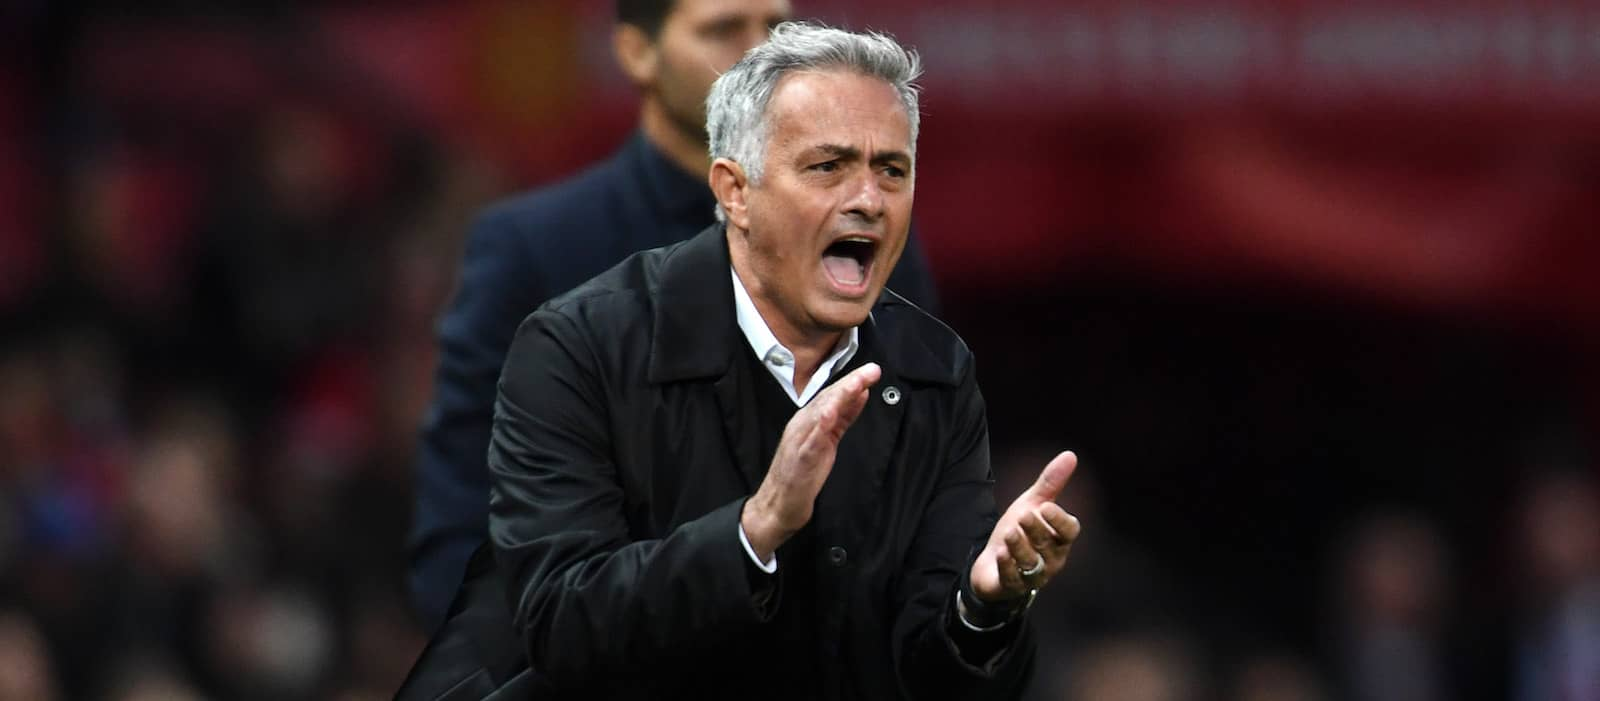 BBC: Manchester United still in support of Jose Mourinho despite Tottenham Hotspur defeat